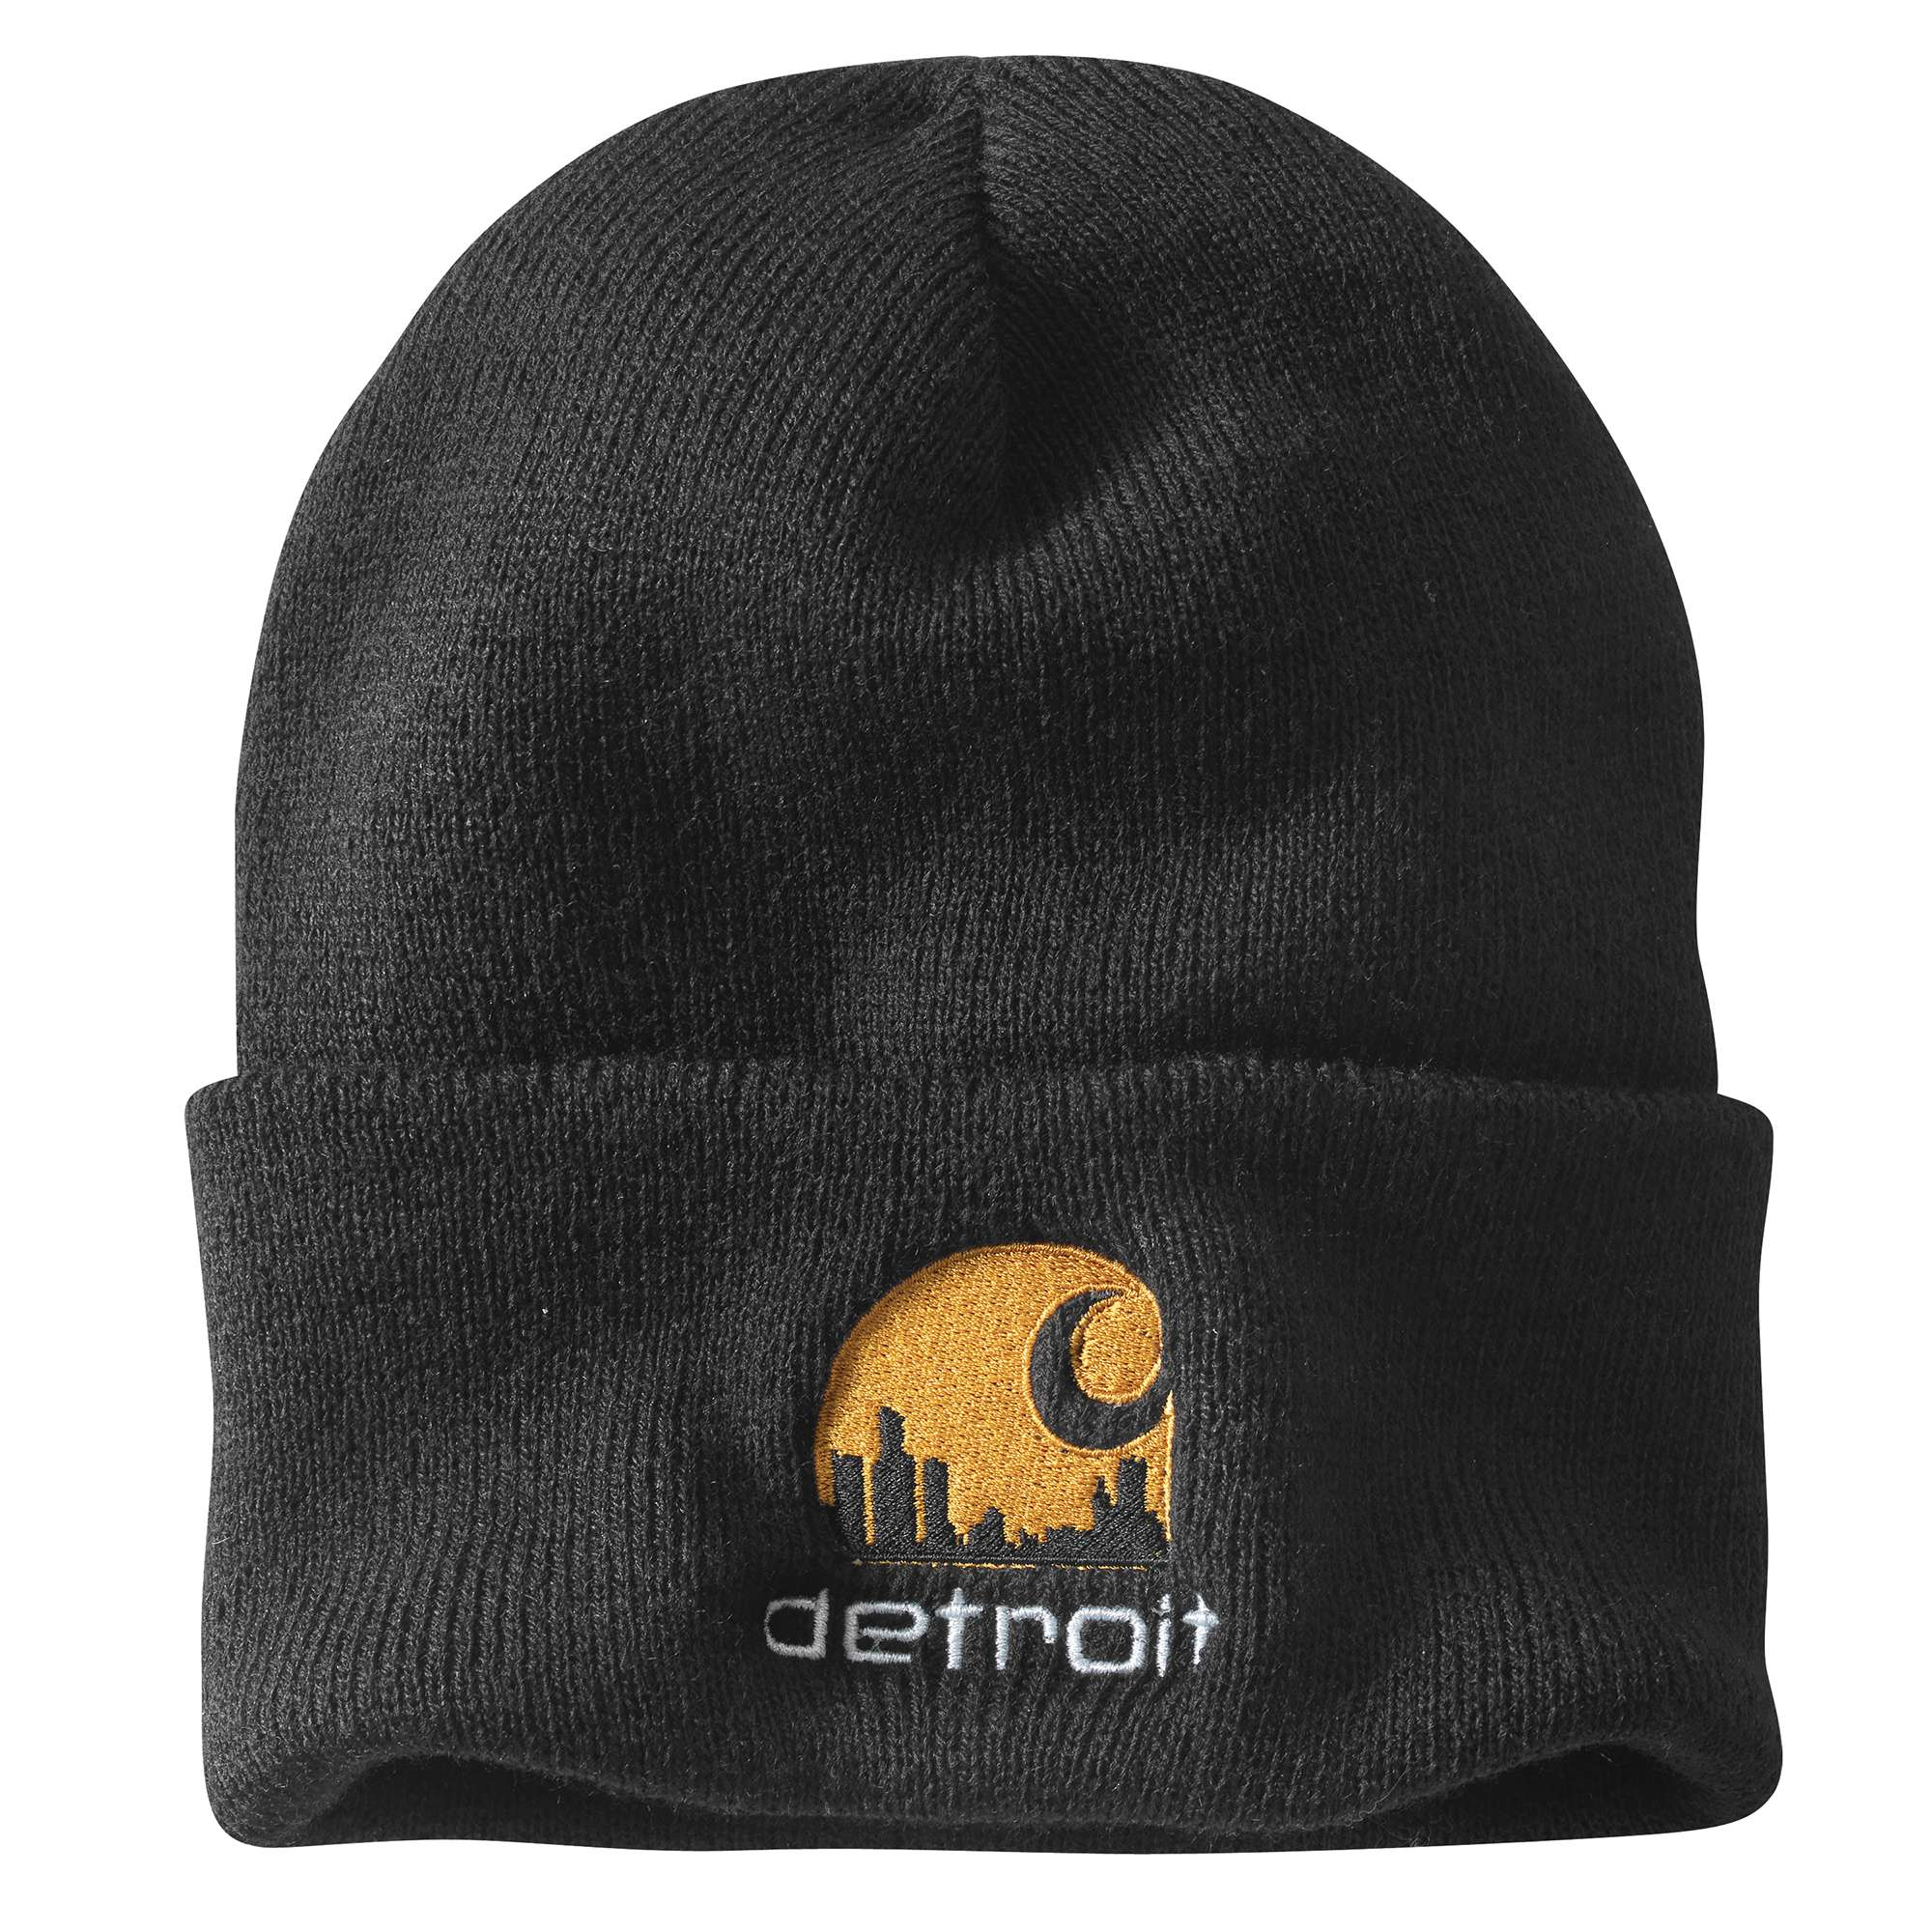 SPECIAL EDITION DETROIT ACRYLIC WATCH HAT